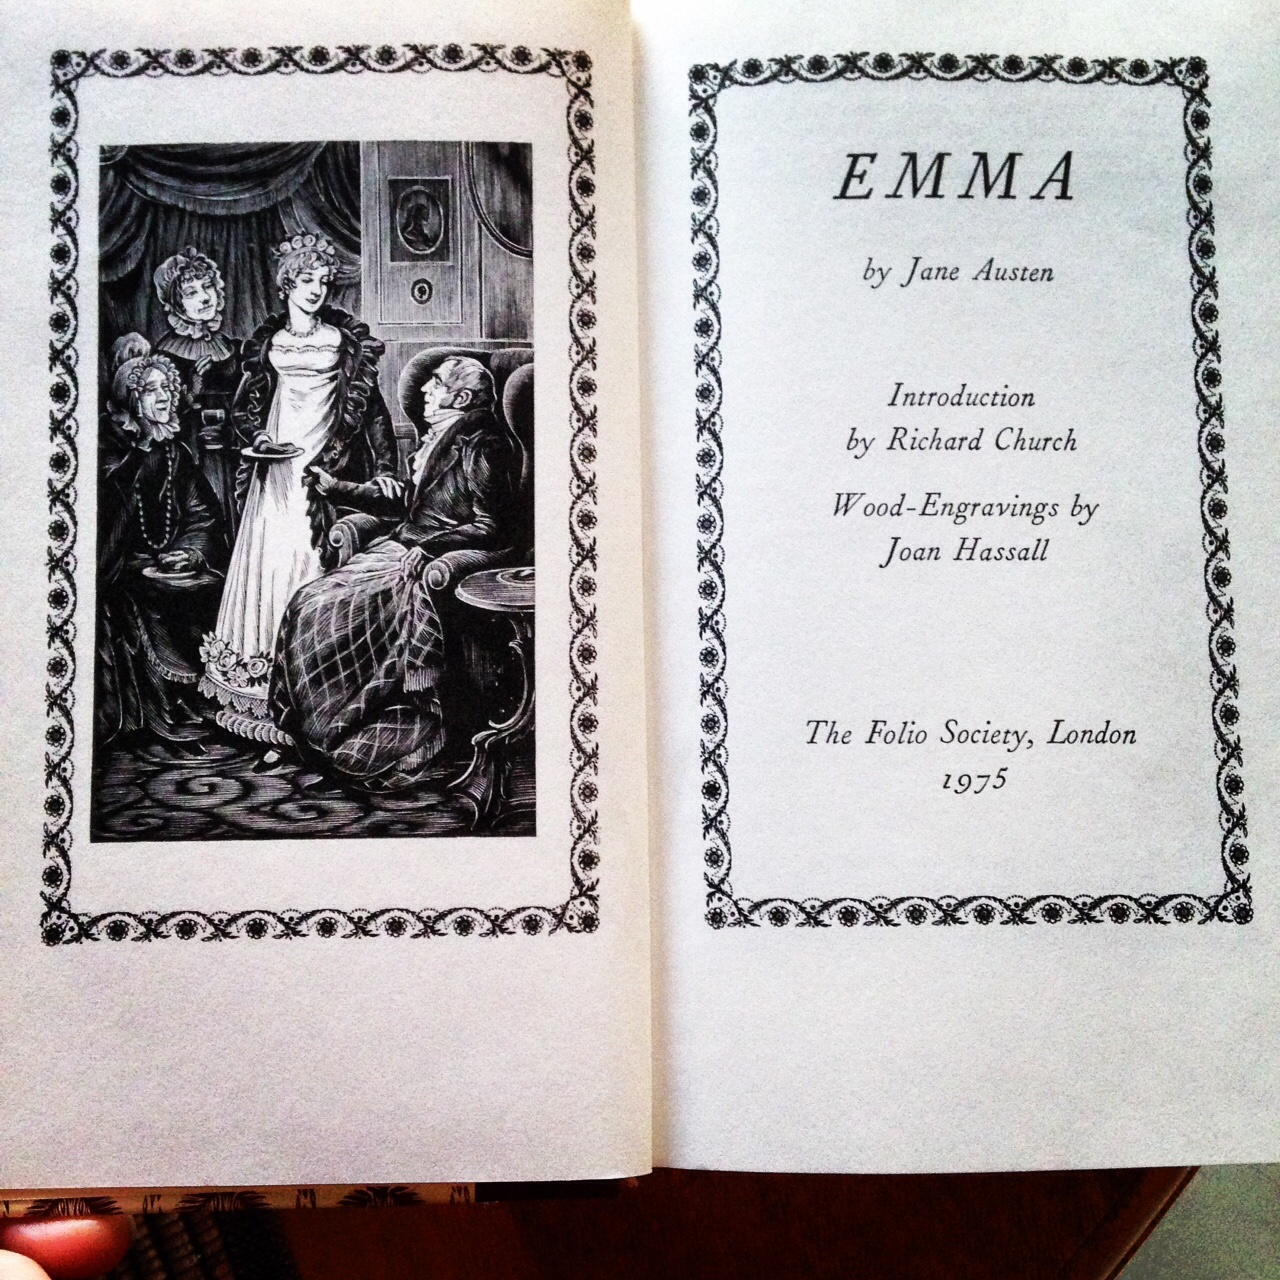 brona s books emma by jane austen title page of my folio society copy of emma